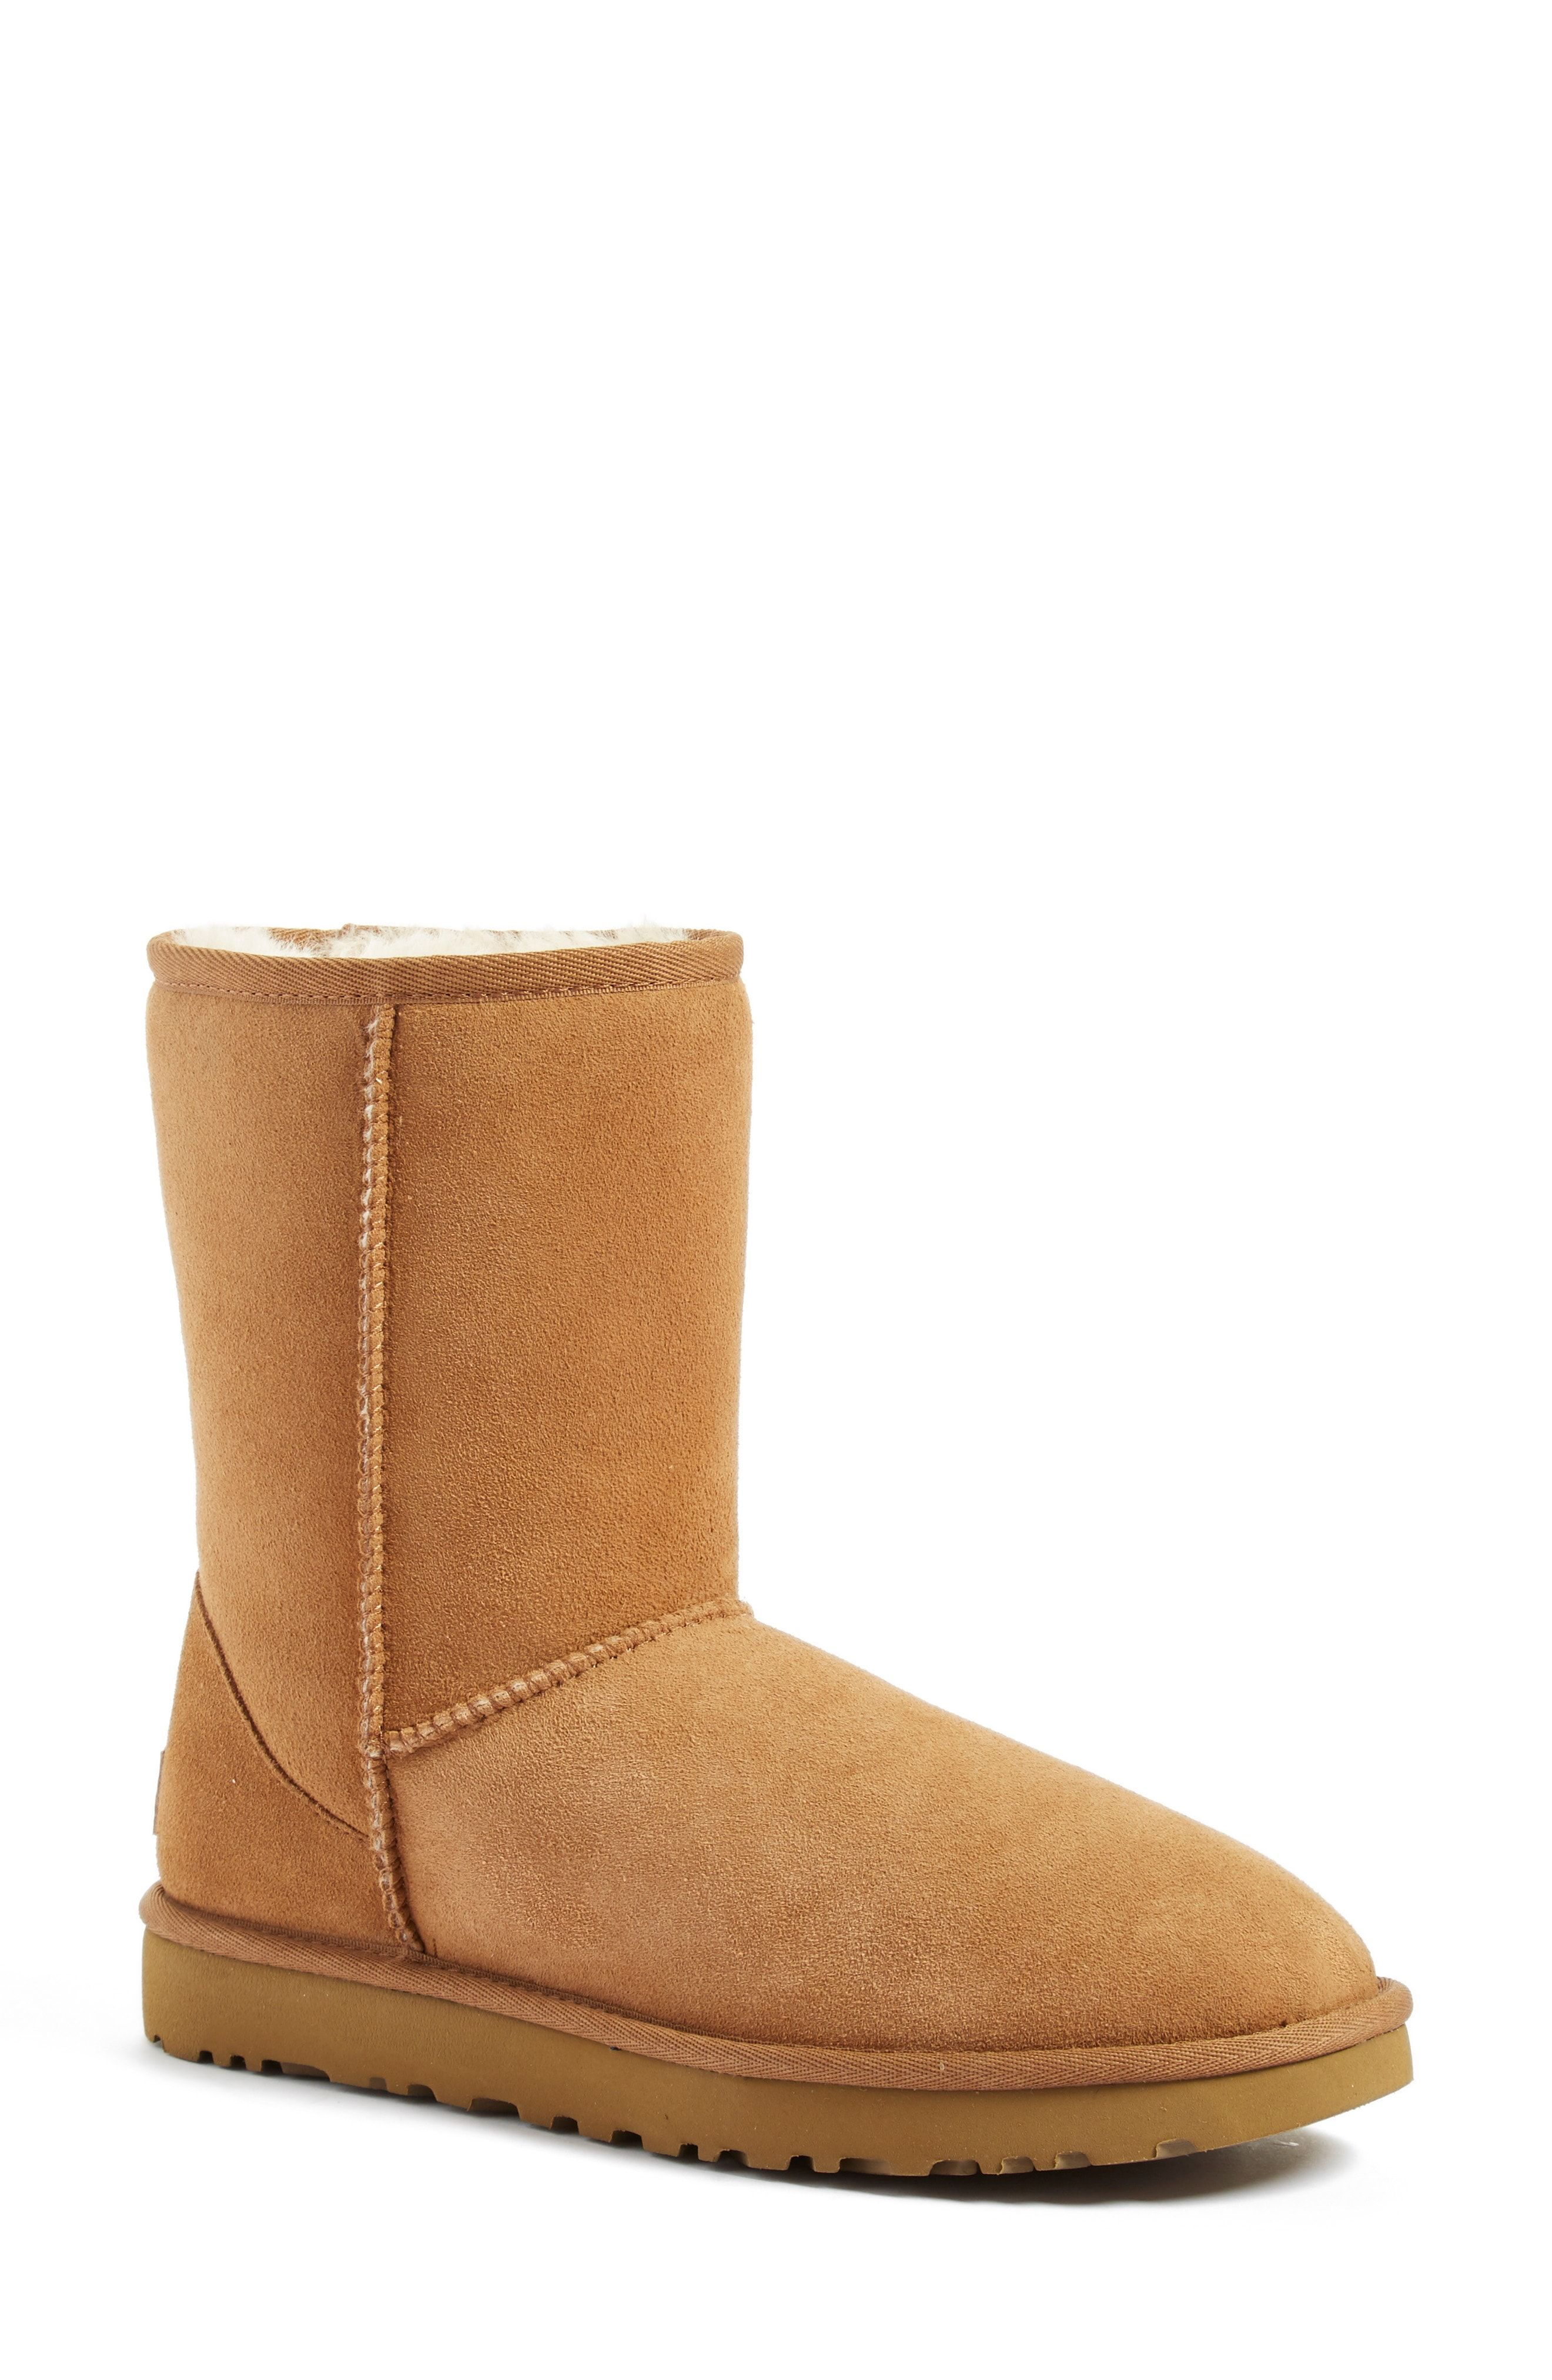 8db54852c95 UGG®  Classic II  Genuine Shearling Lined Short Boot available at  Nordstrom